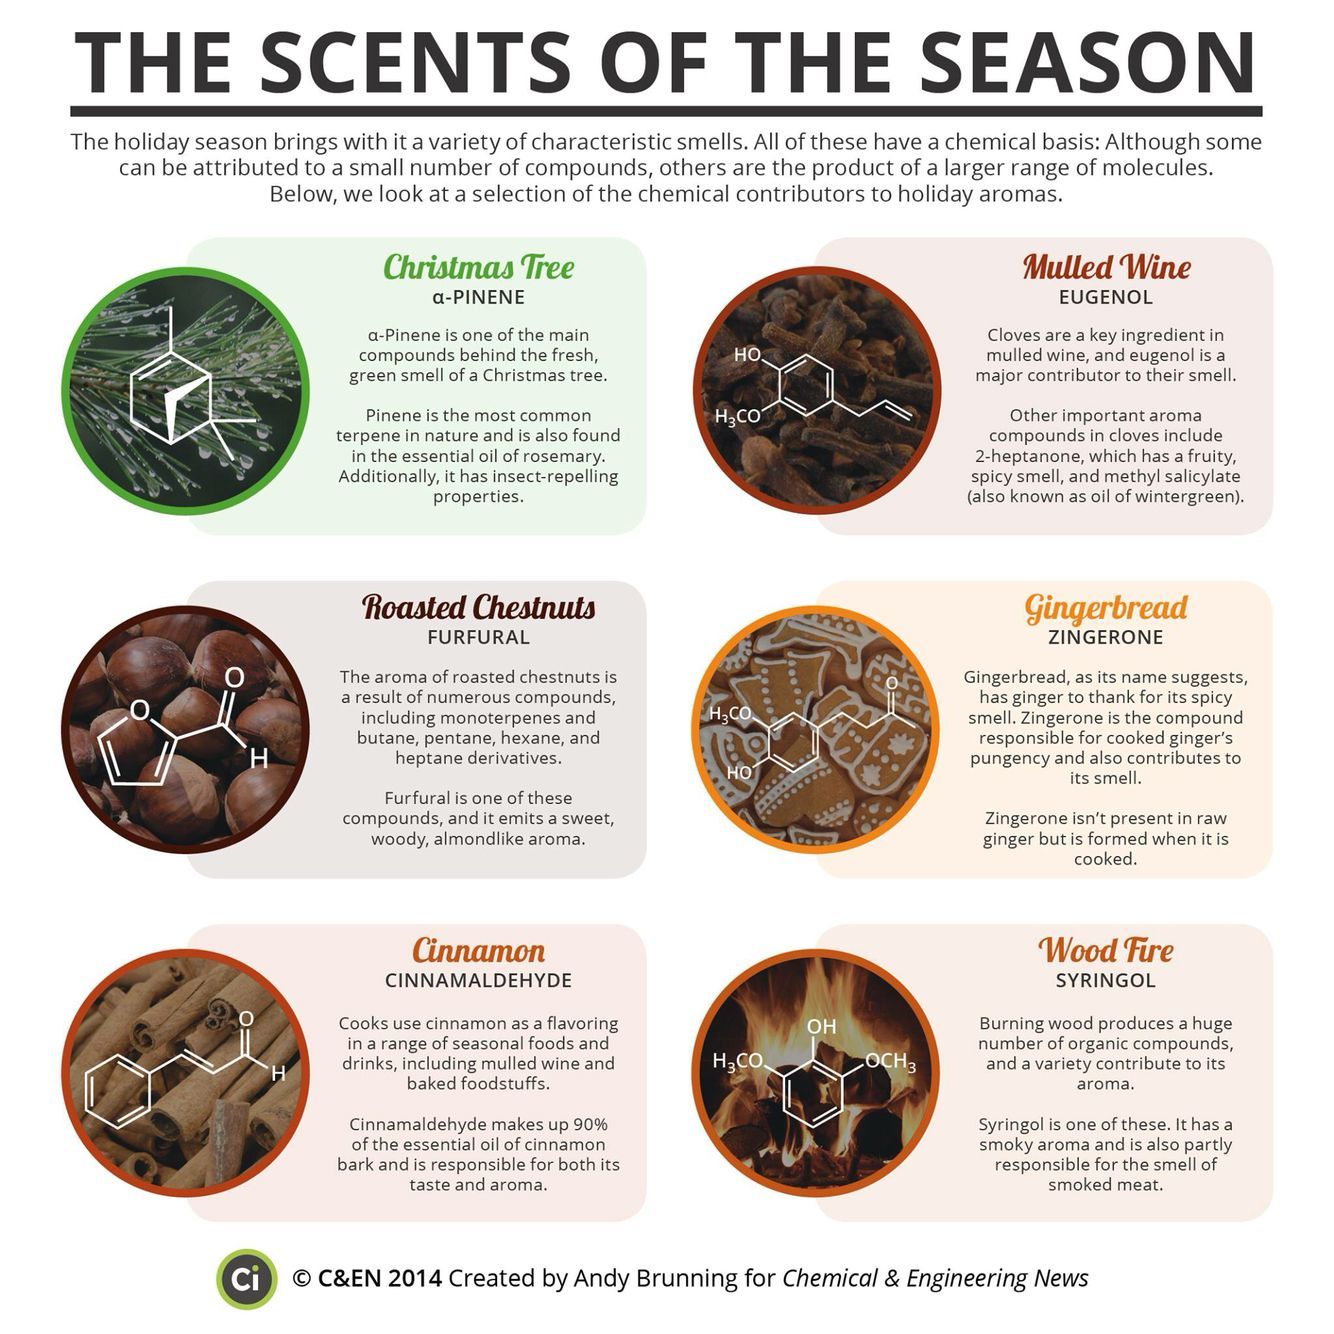 Scents Of The Season With Images Scents Organic Chemistry Science